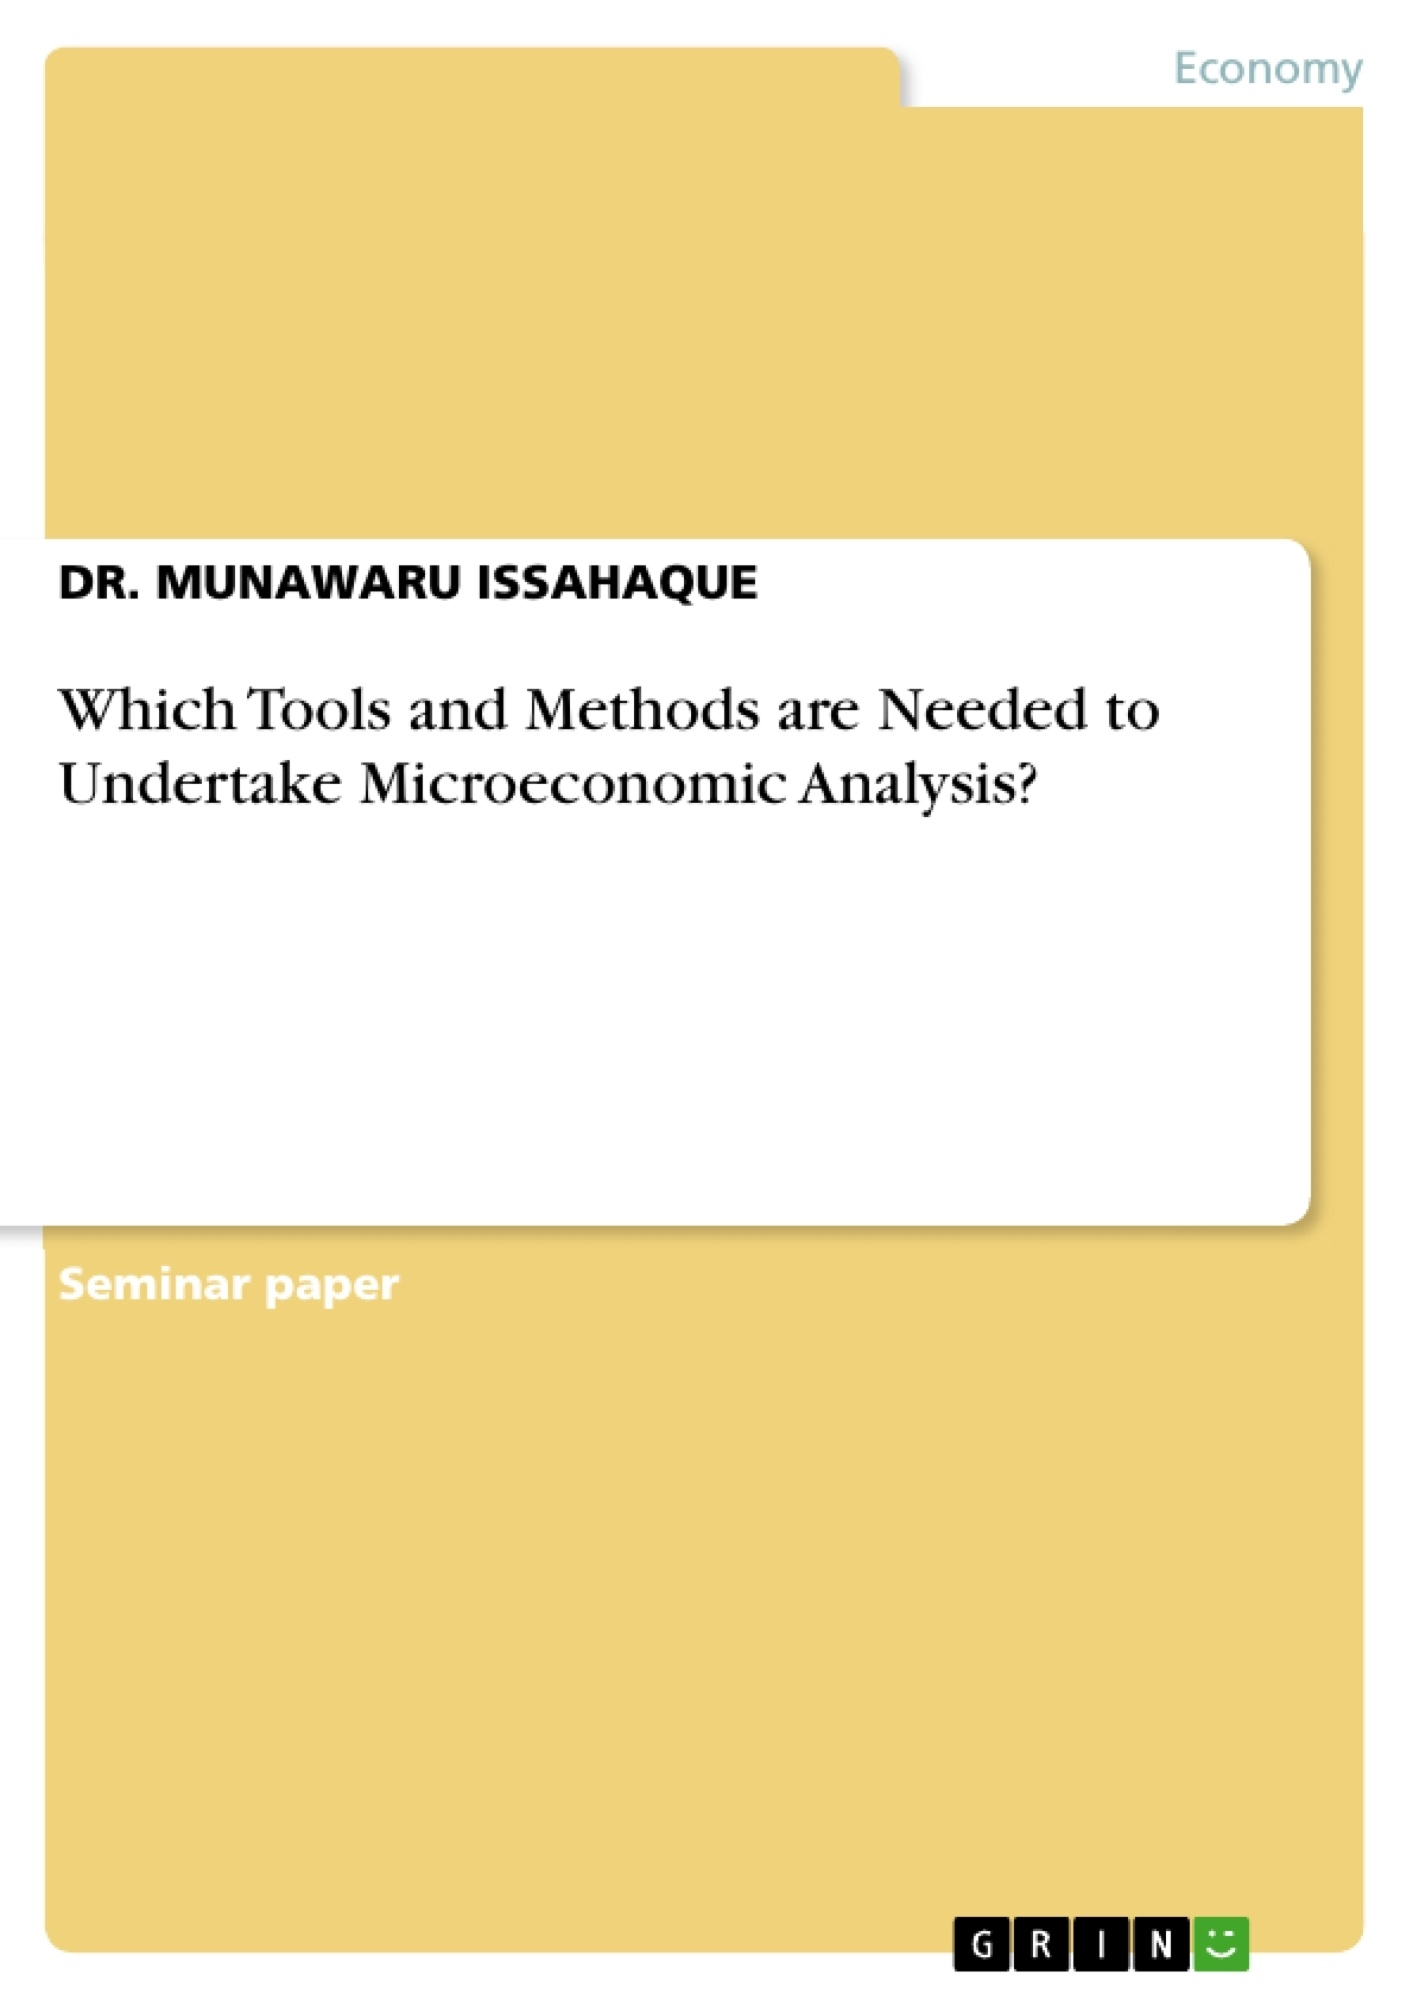 Title: Which Tools and Methods are Needed to Undertake Microeconomic Analysis?